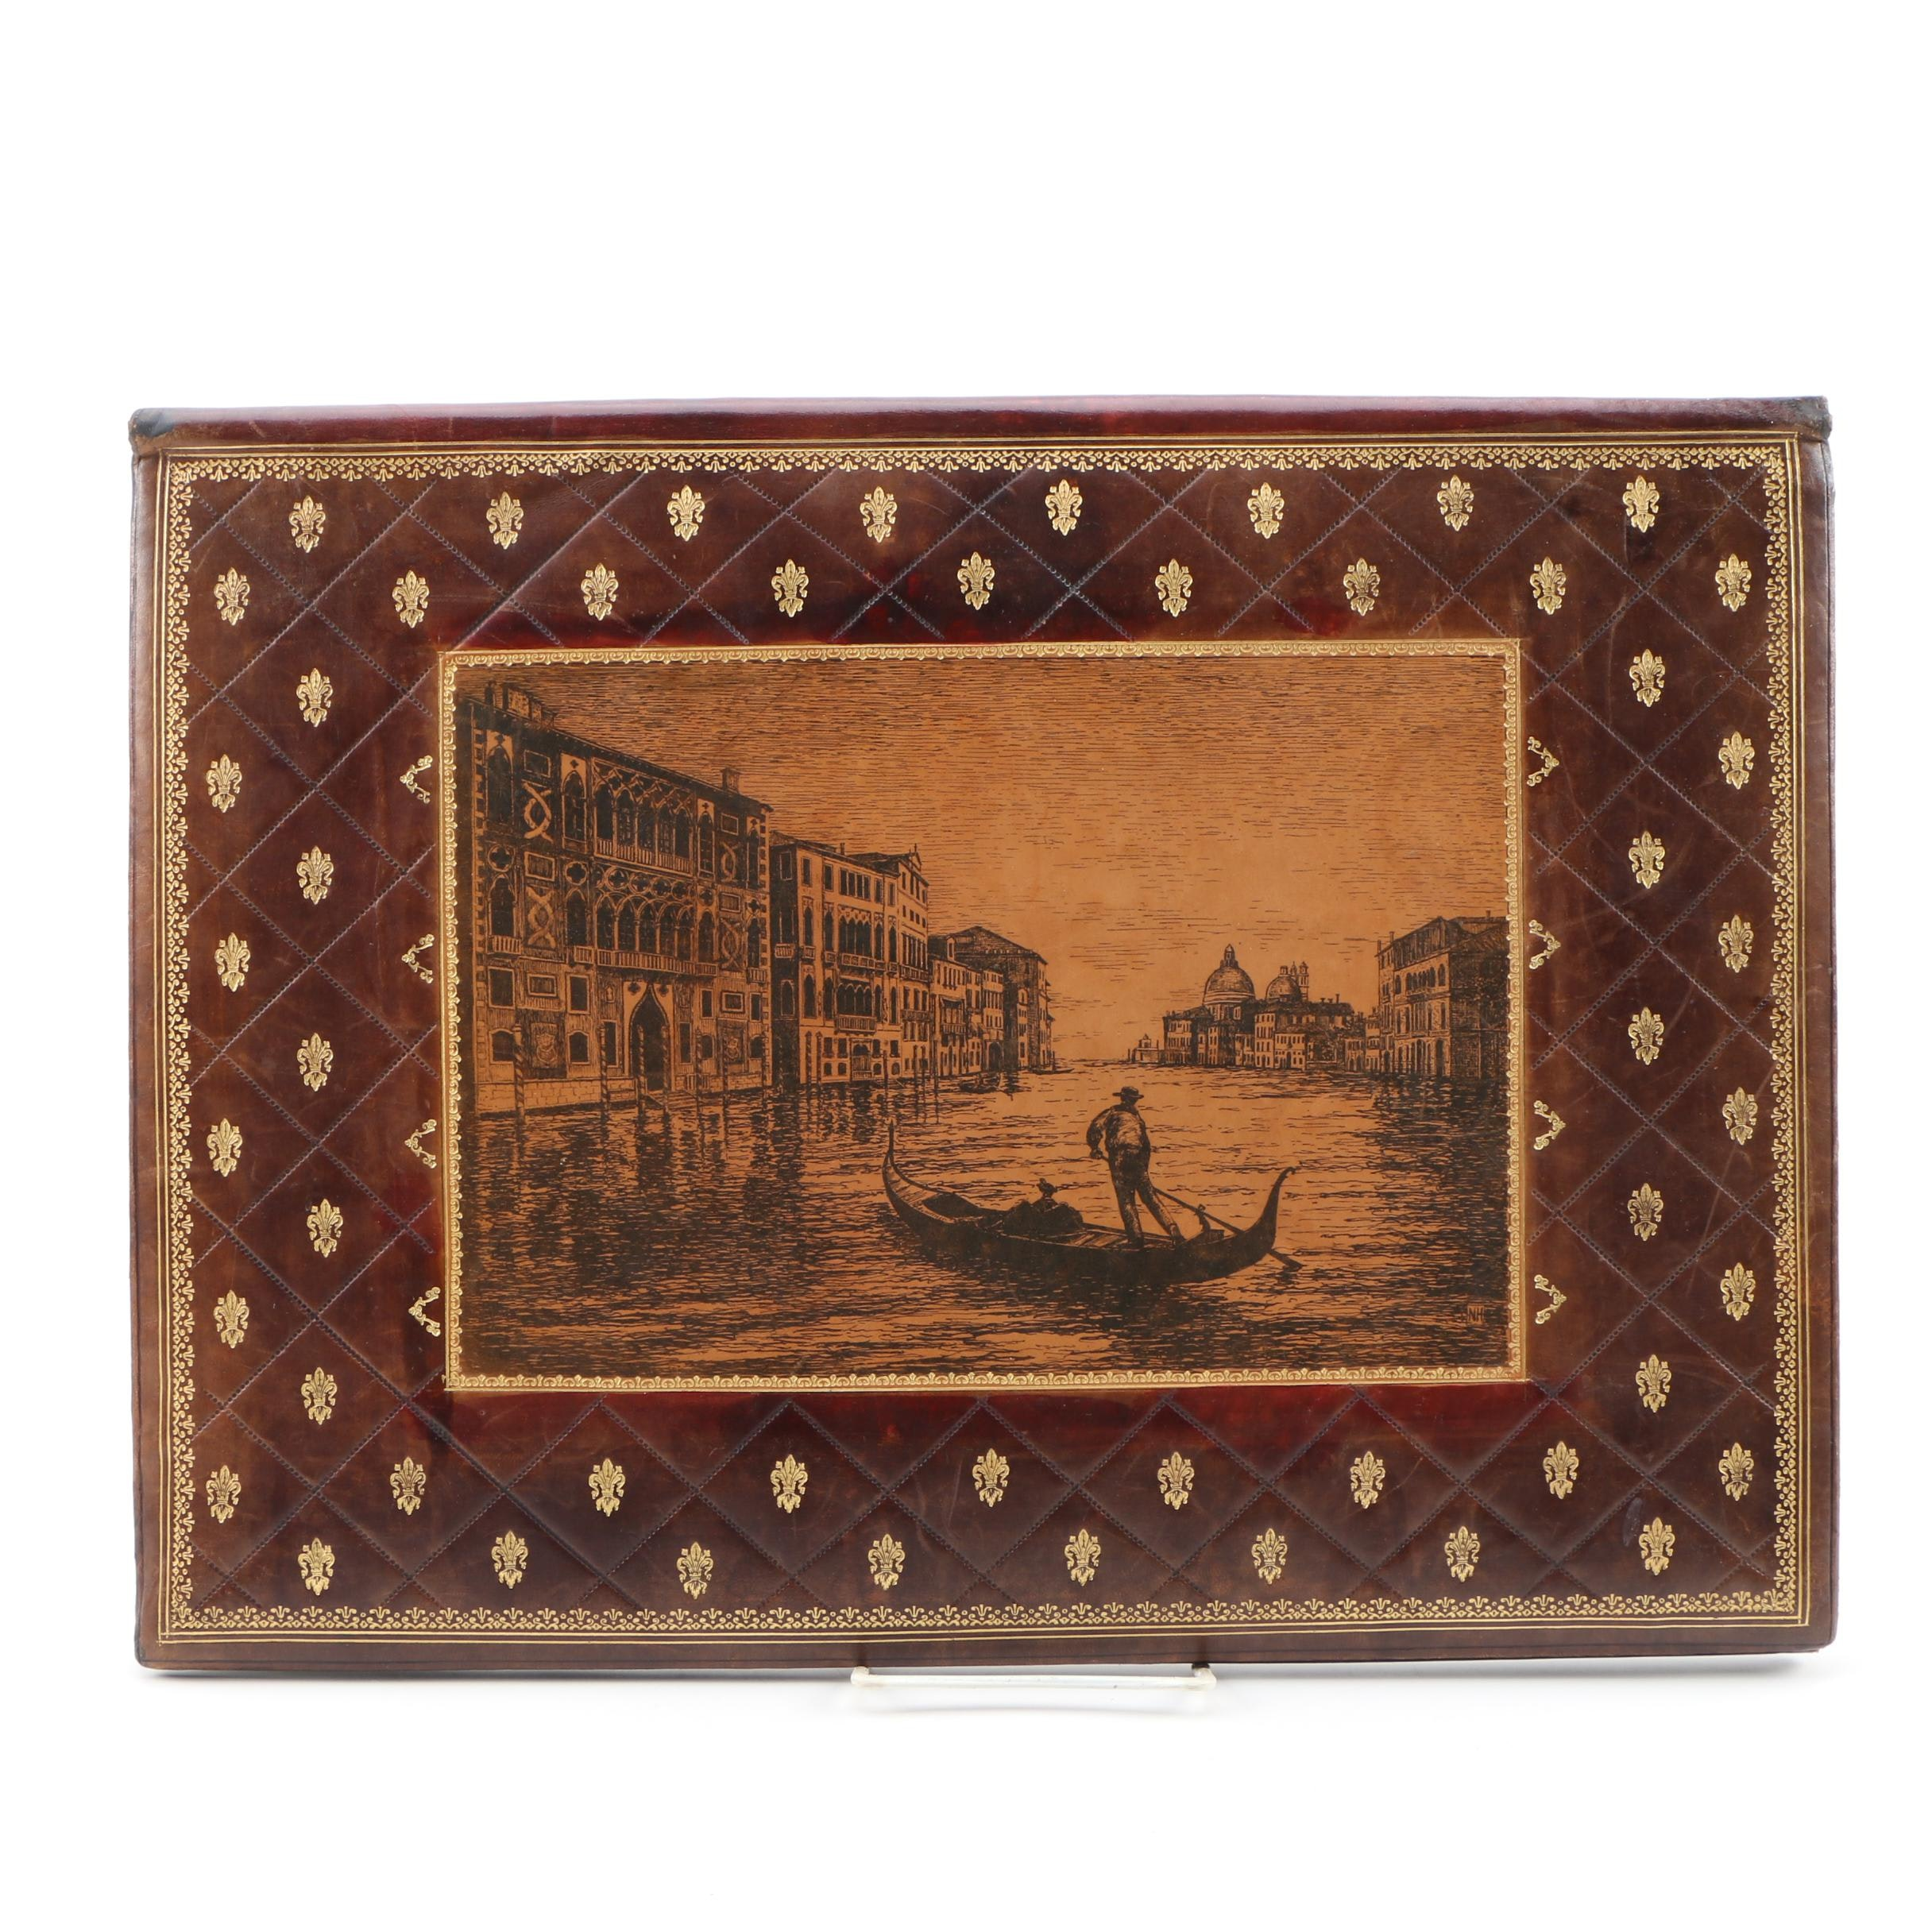 G. B. Florence Leather Blotter Folio with Canal Scene, Mid-Century